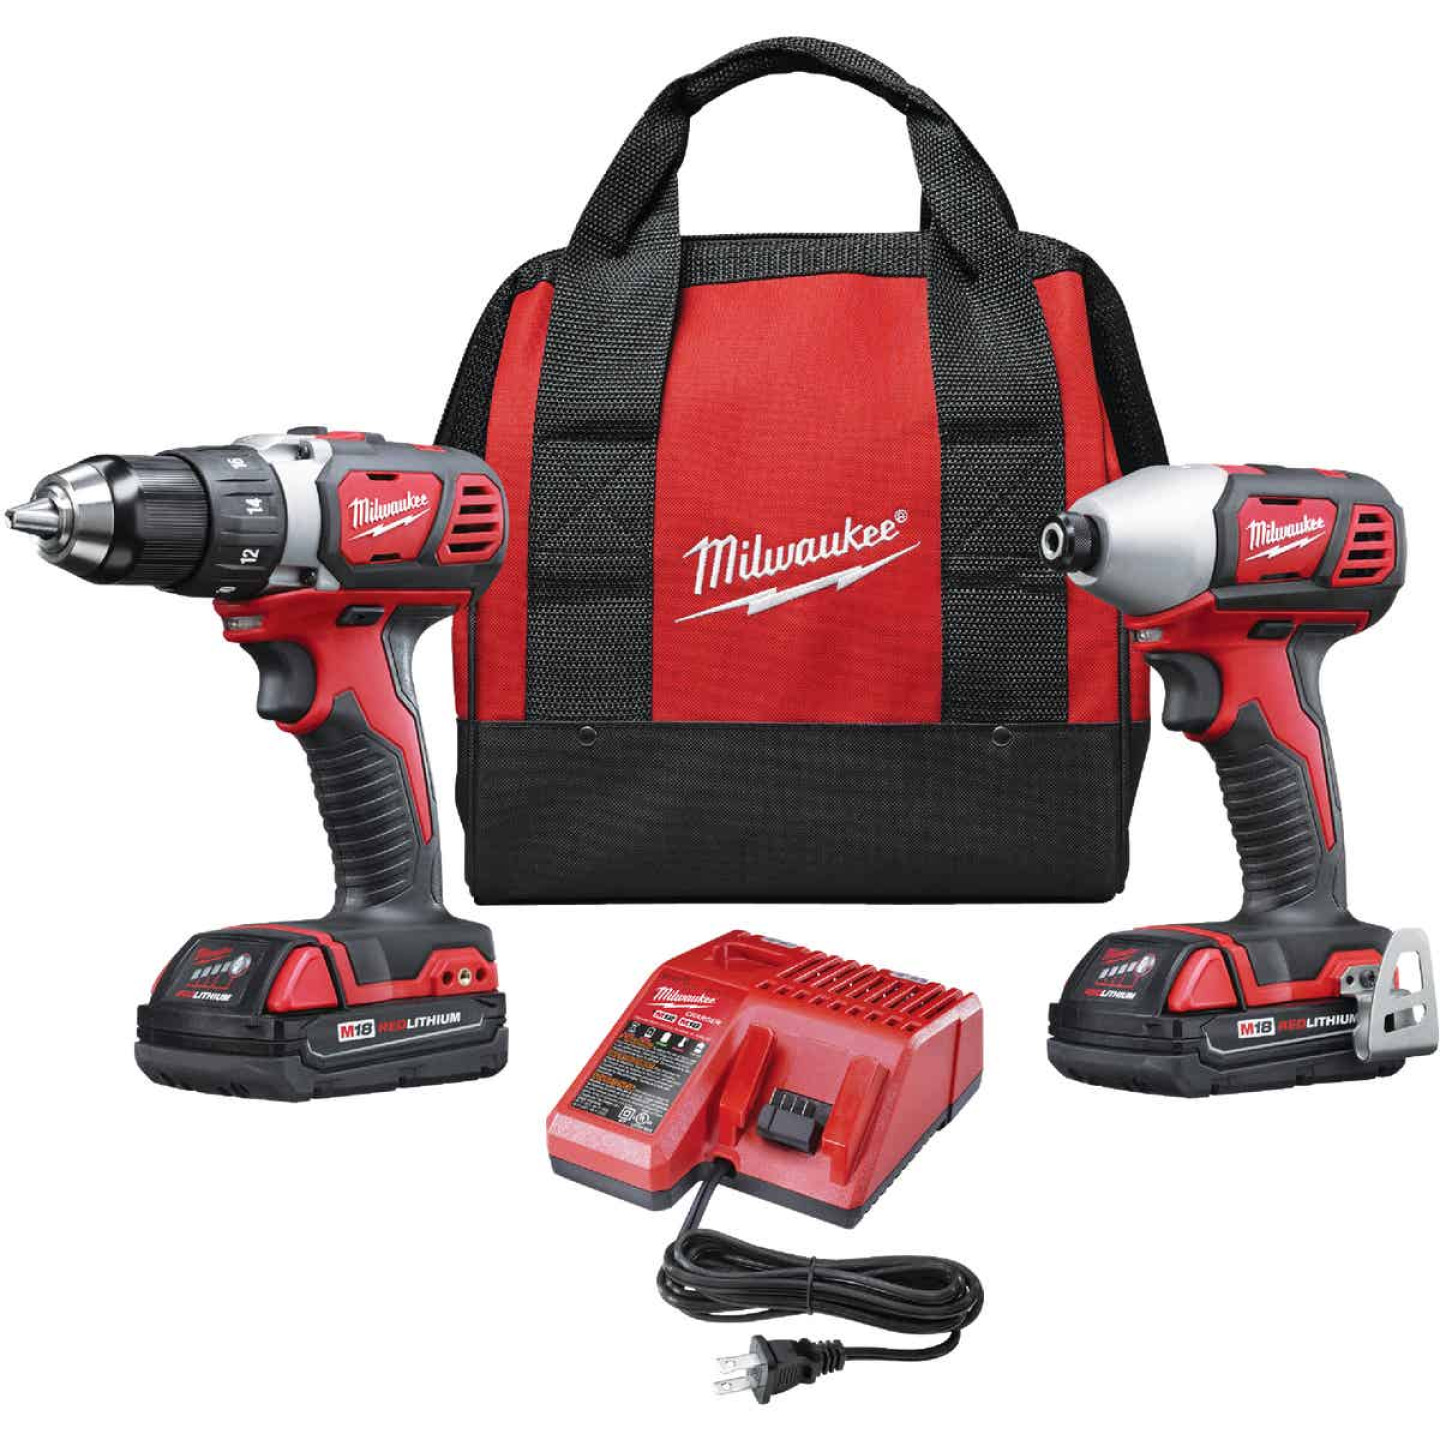 Milwaukee 2-Tool M18 Lithium-Ion Compact Drill/Driver & Impact Driver Cordless Tool Combo Kit Image 1